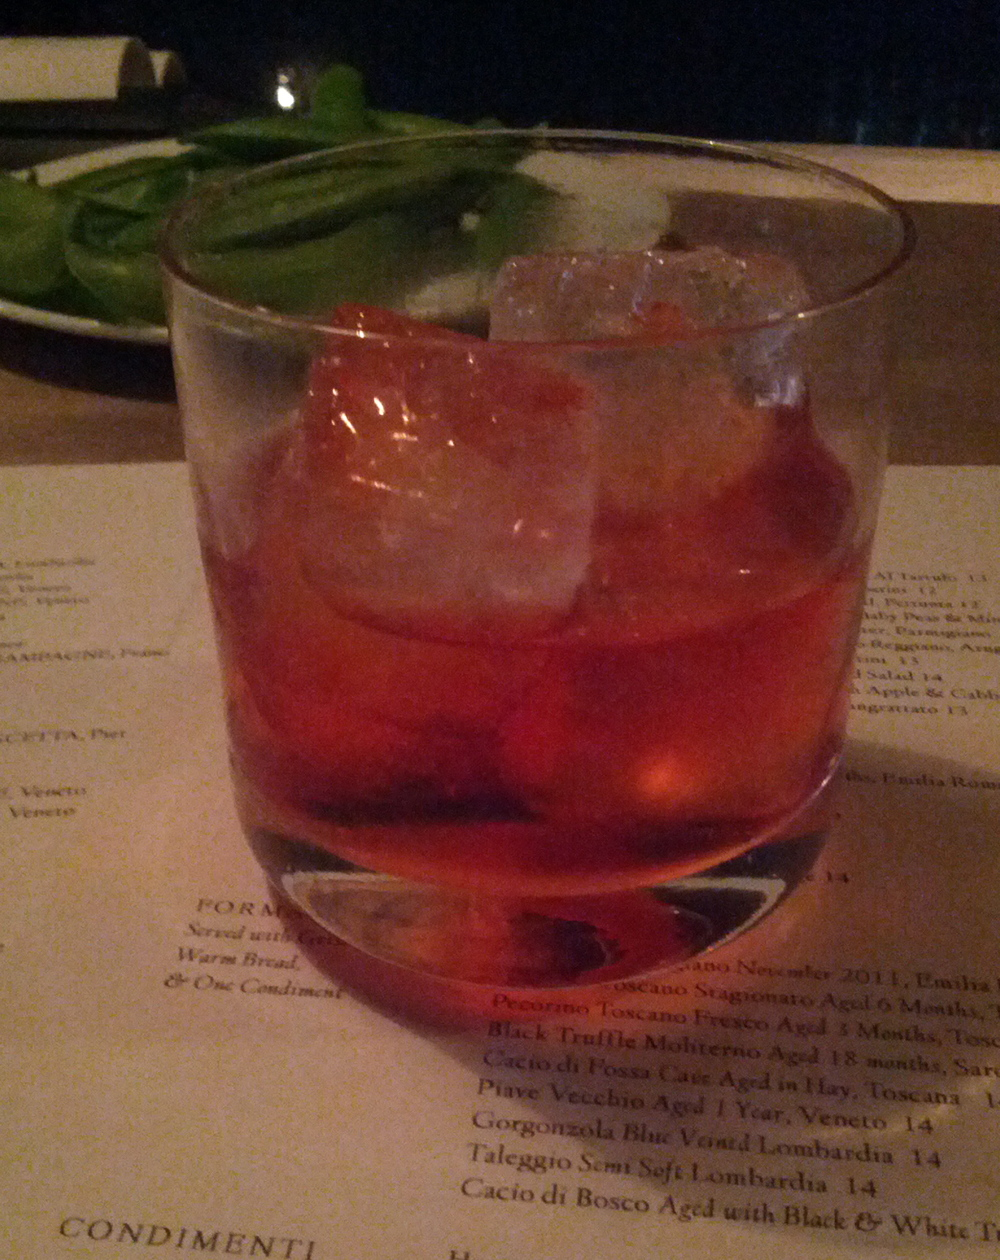 I love a good Negroni...on this evening I loved several of them, ha ha.